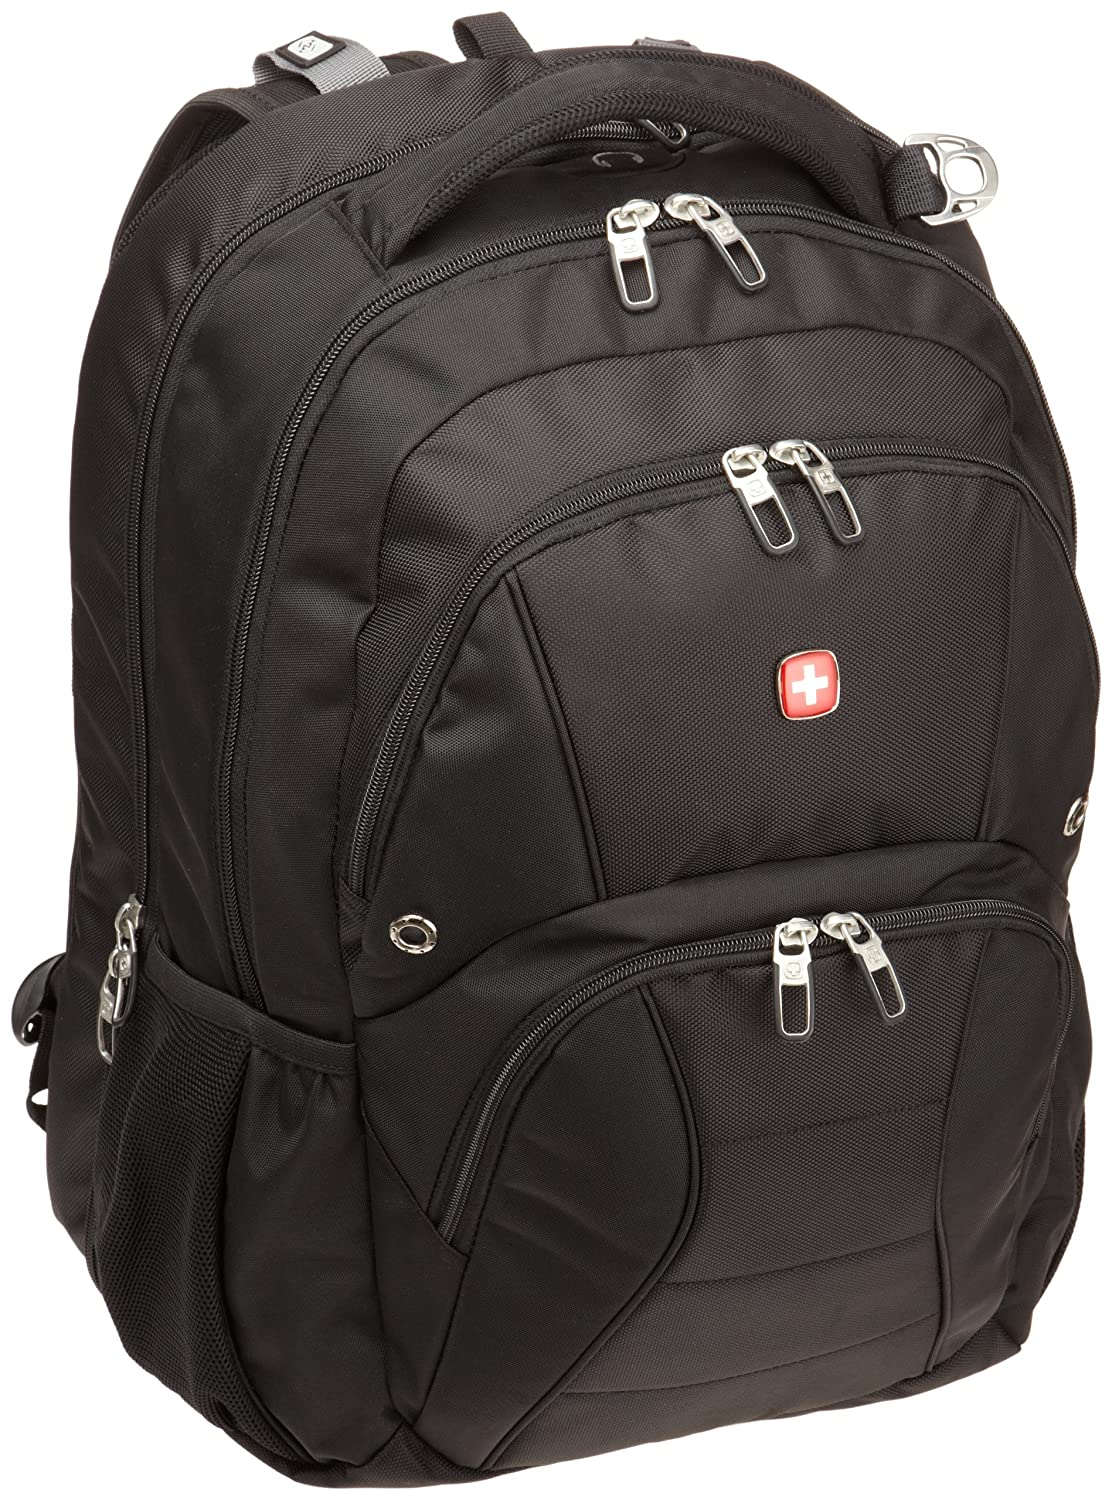 SwissGear SA1908 ScanSmart Backpack (Black) Fits Most 17 Inch Laptops $45.42